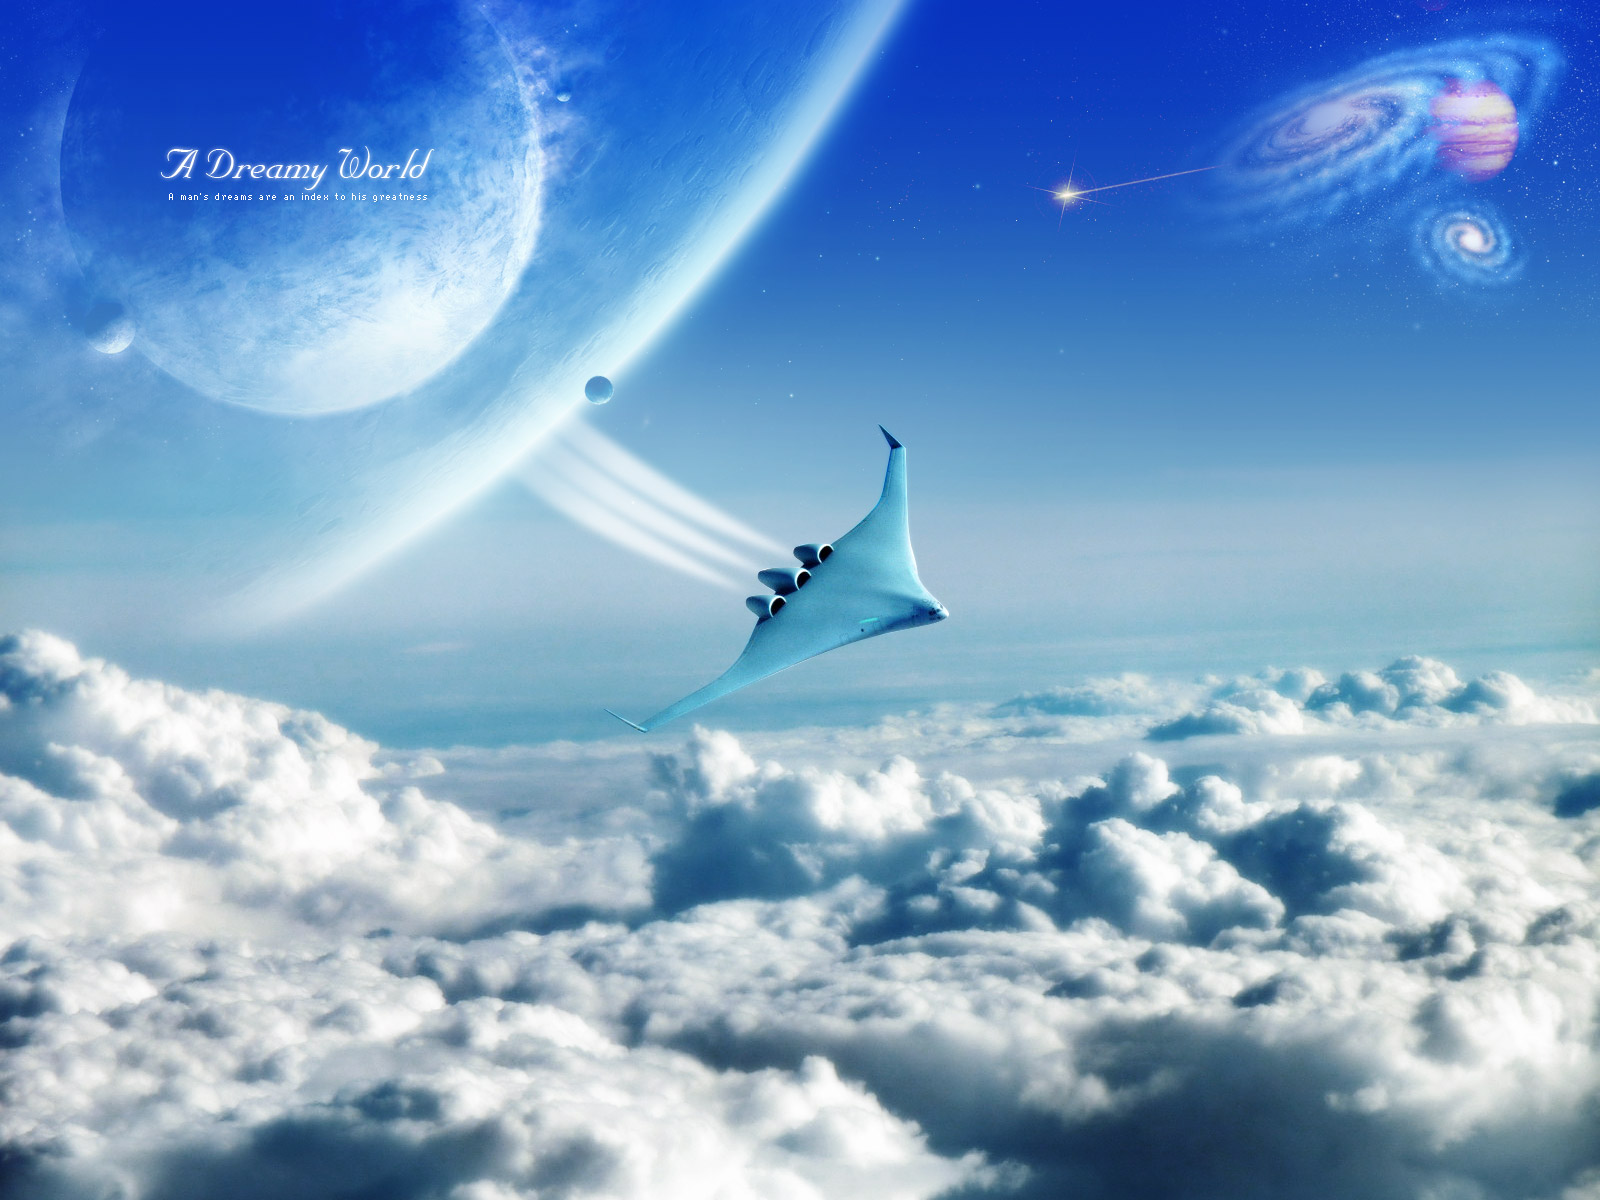 Nice wallpapers A Dreamy World 1600x1200px